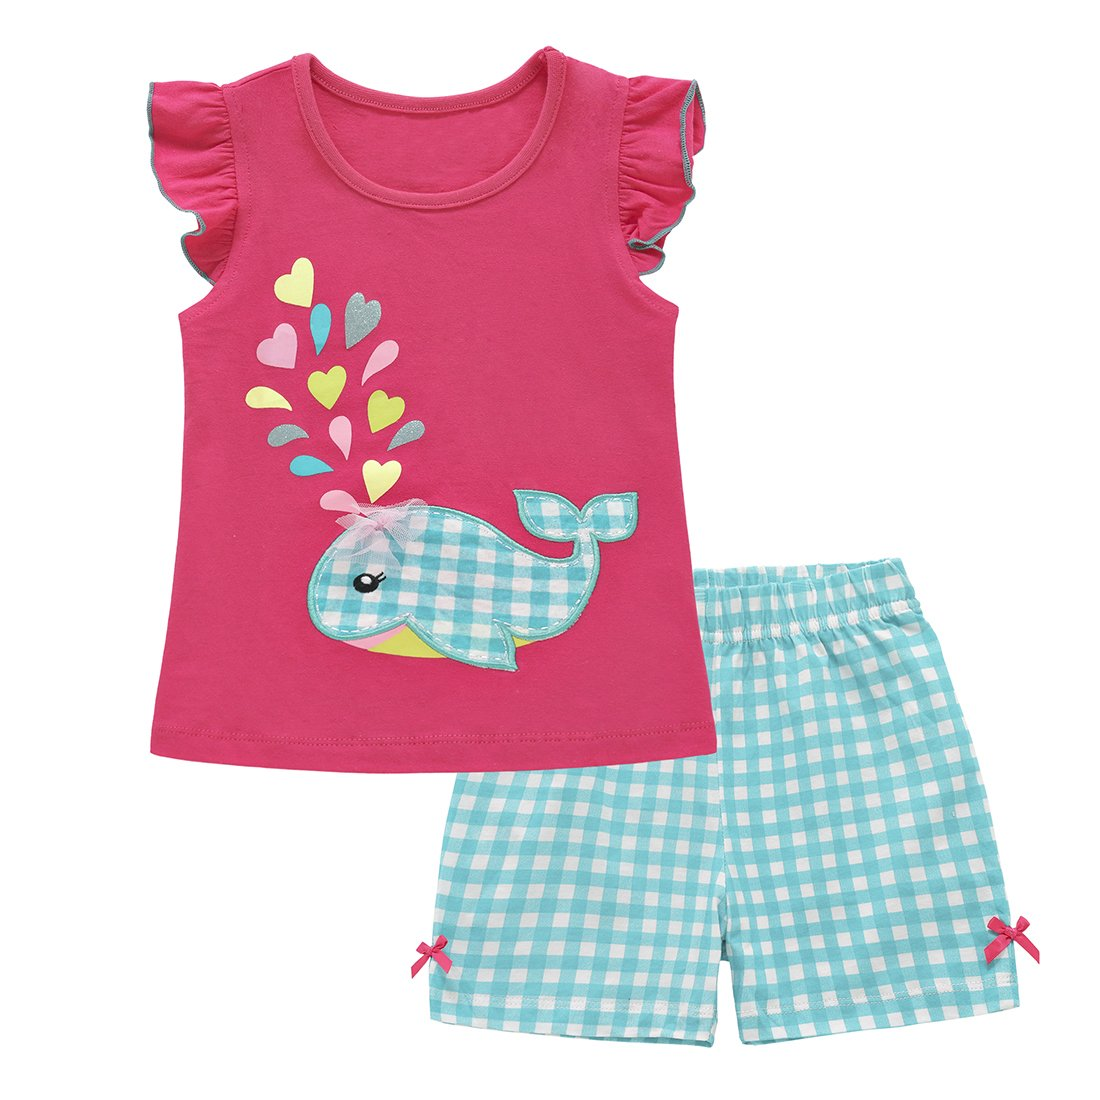 ChicNChic Toddler Baby Girls Summer Clothes Whale Print Top with Plaid Shorts Outfits Set (5T, Pink)